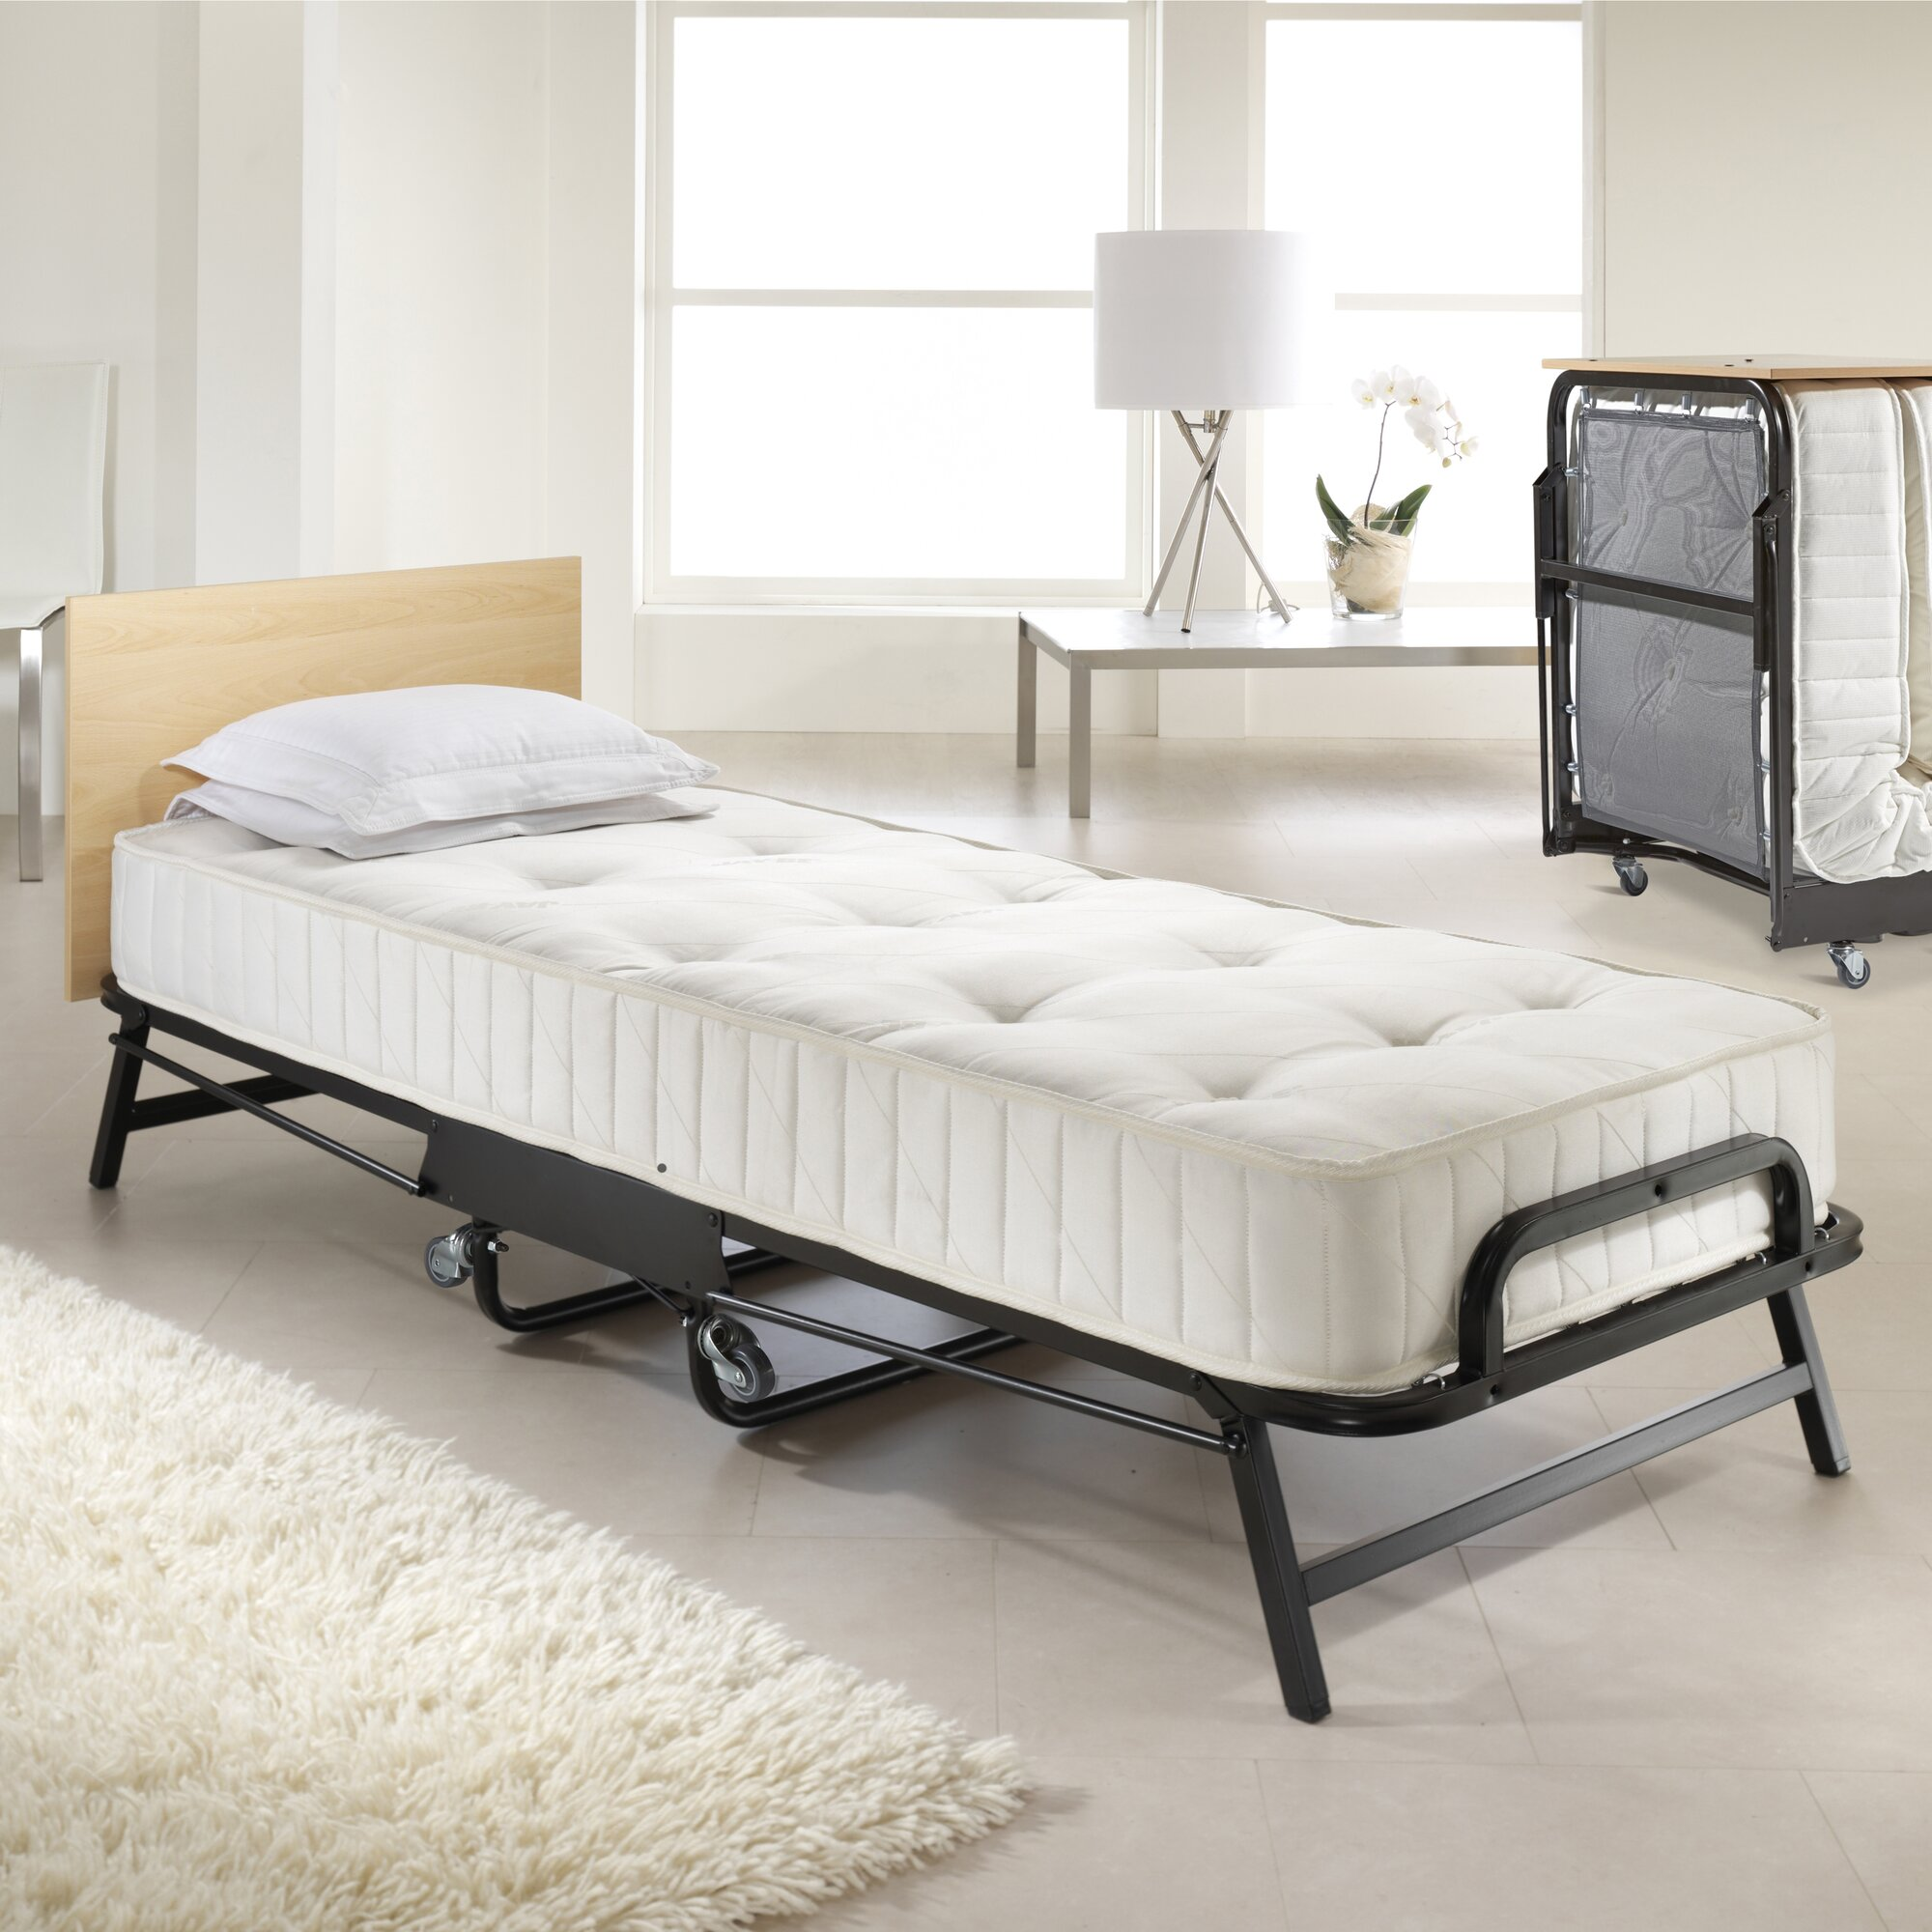 Folding Beds Reviews : Jay be crown premier folding bed reviews wayfair